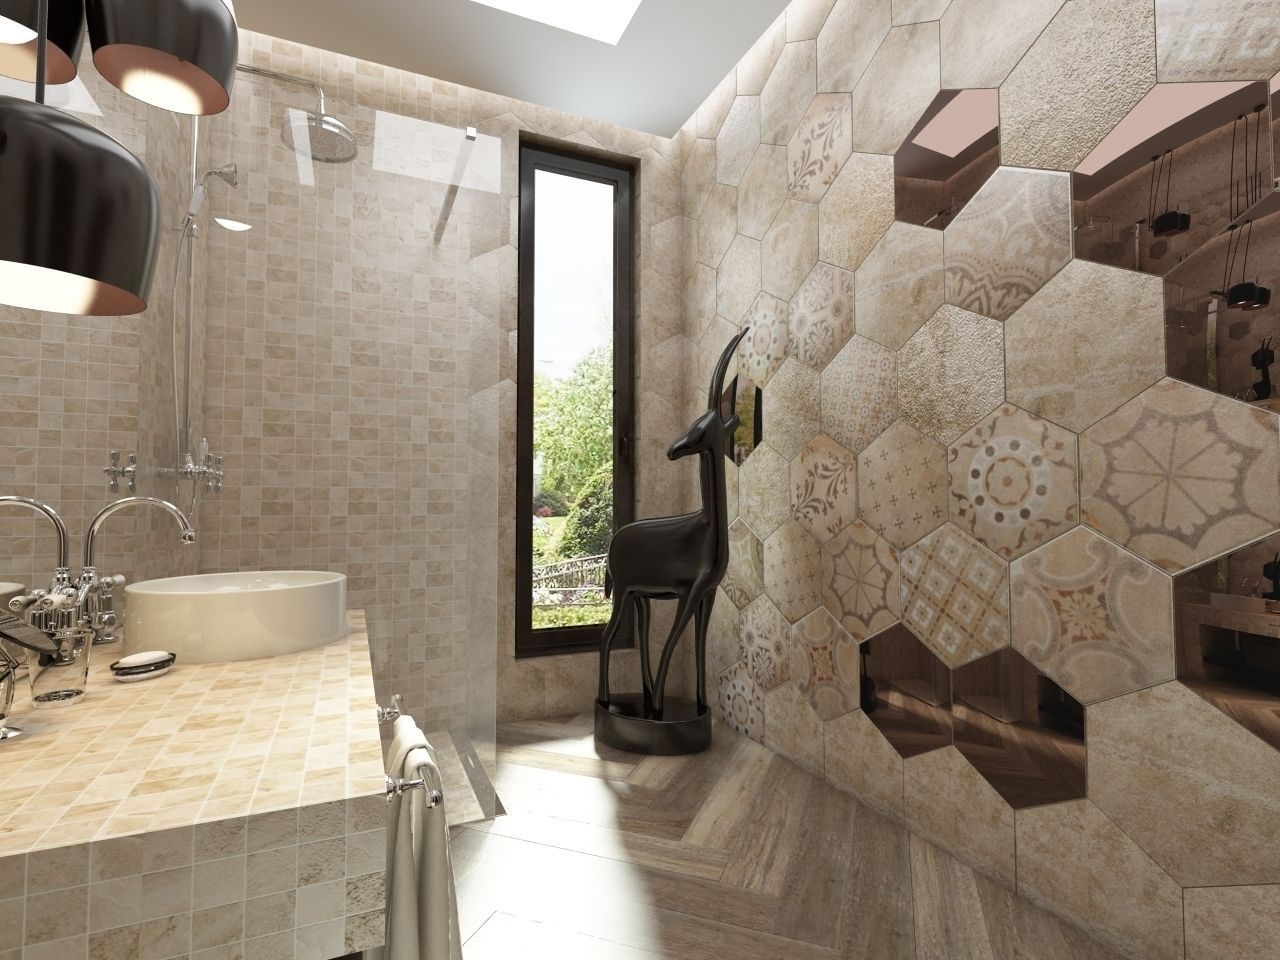 Bathroom Italian Ceramic Tiles 3d Model Max Fbx 1 ...